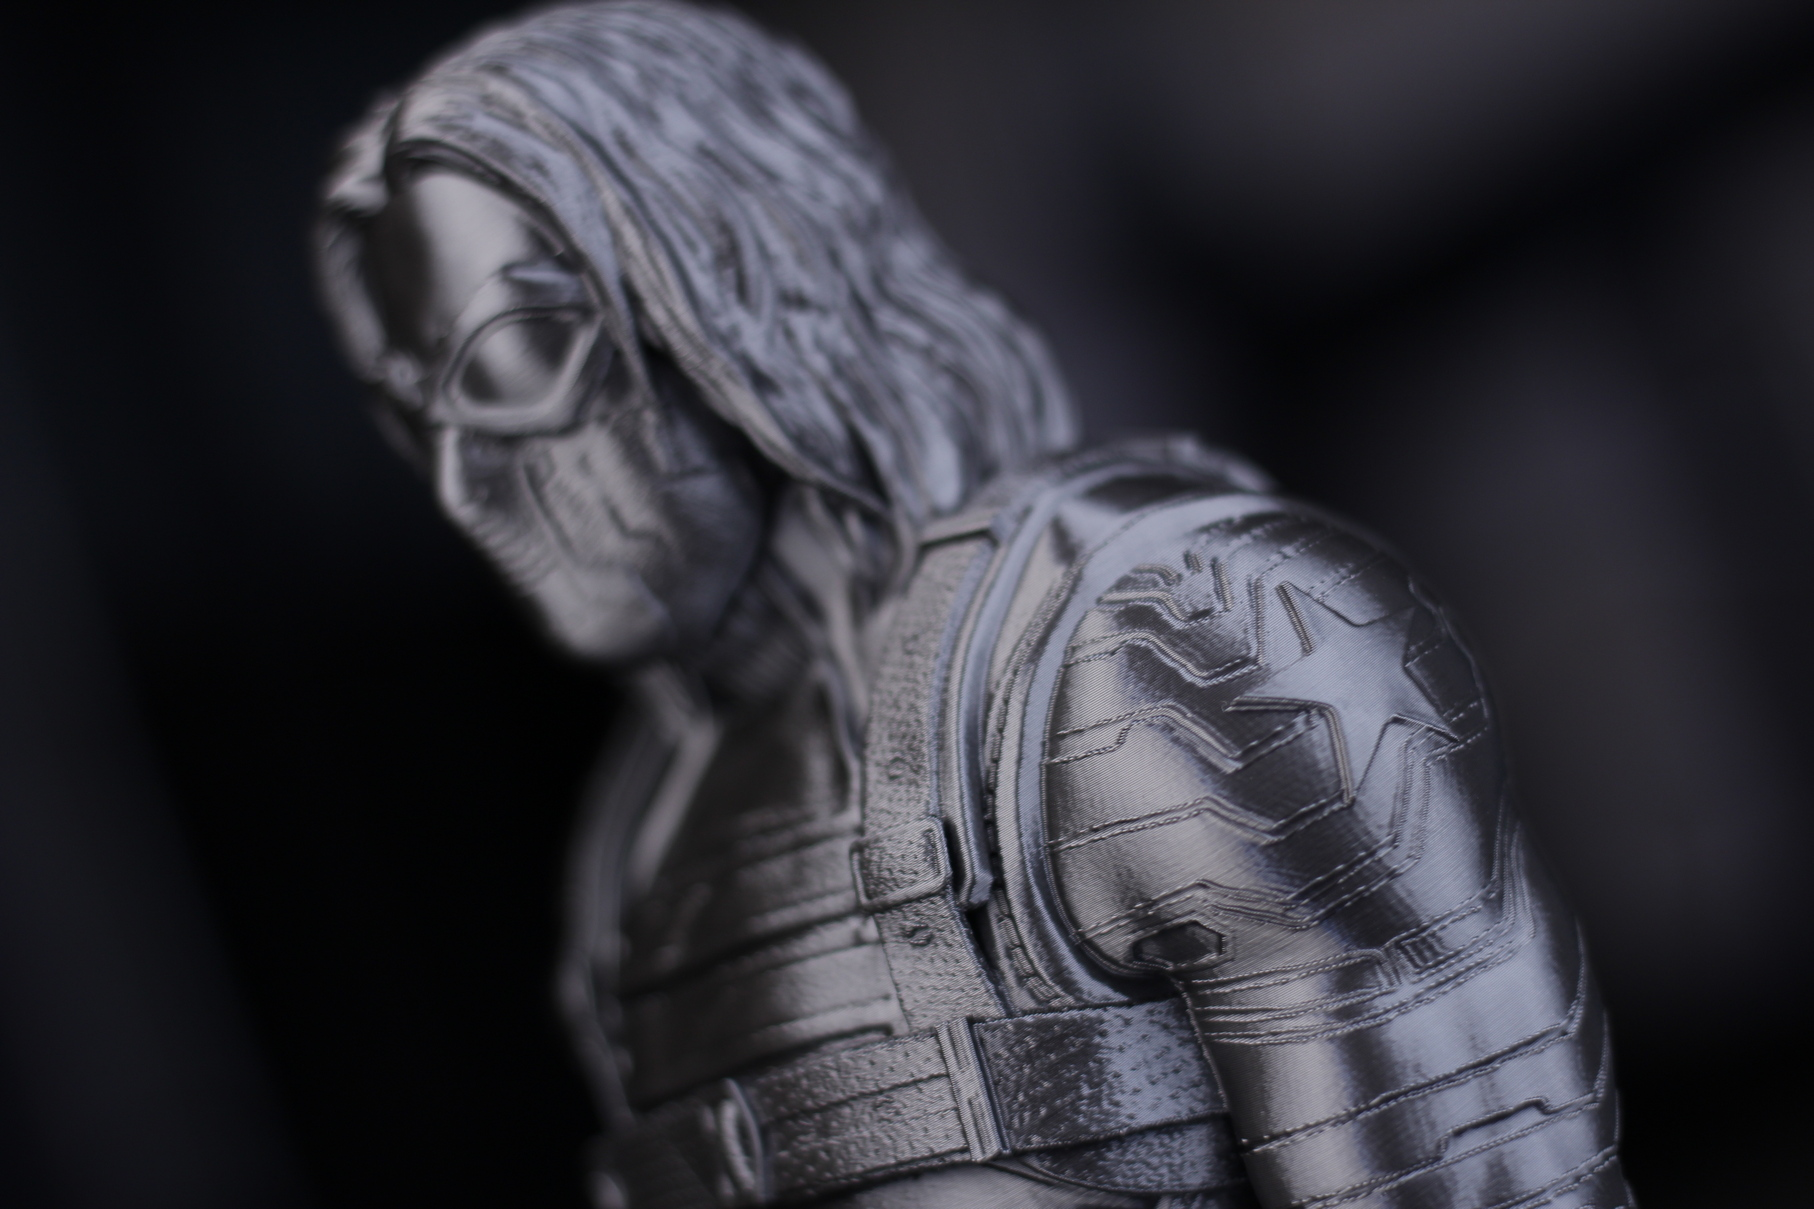 Masked-Winter-Soldier-from-Fotis-Mint-on-Creality-Sermoon-D1-4